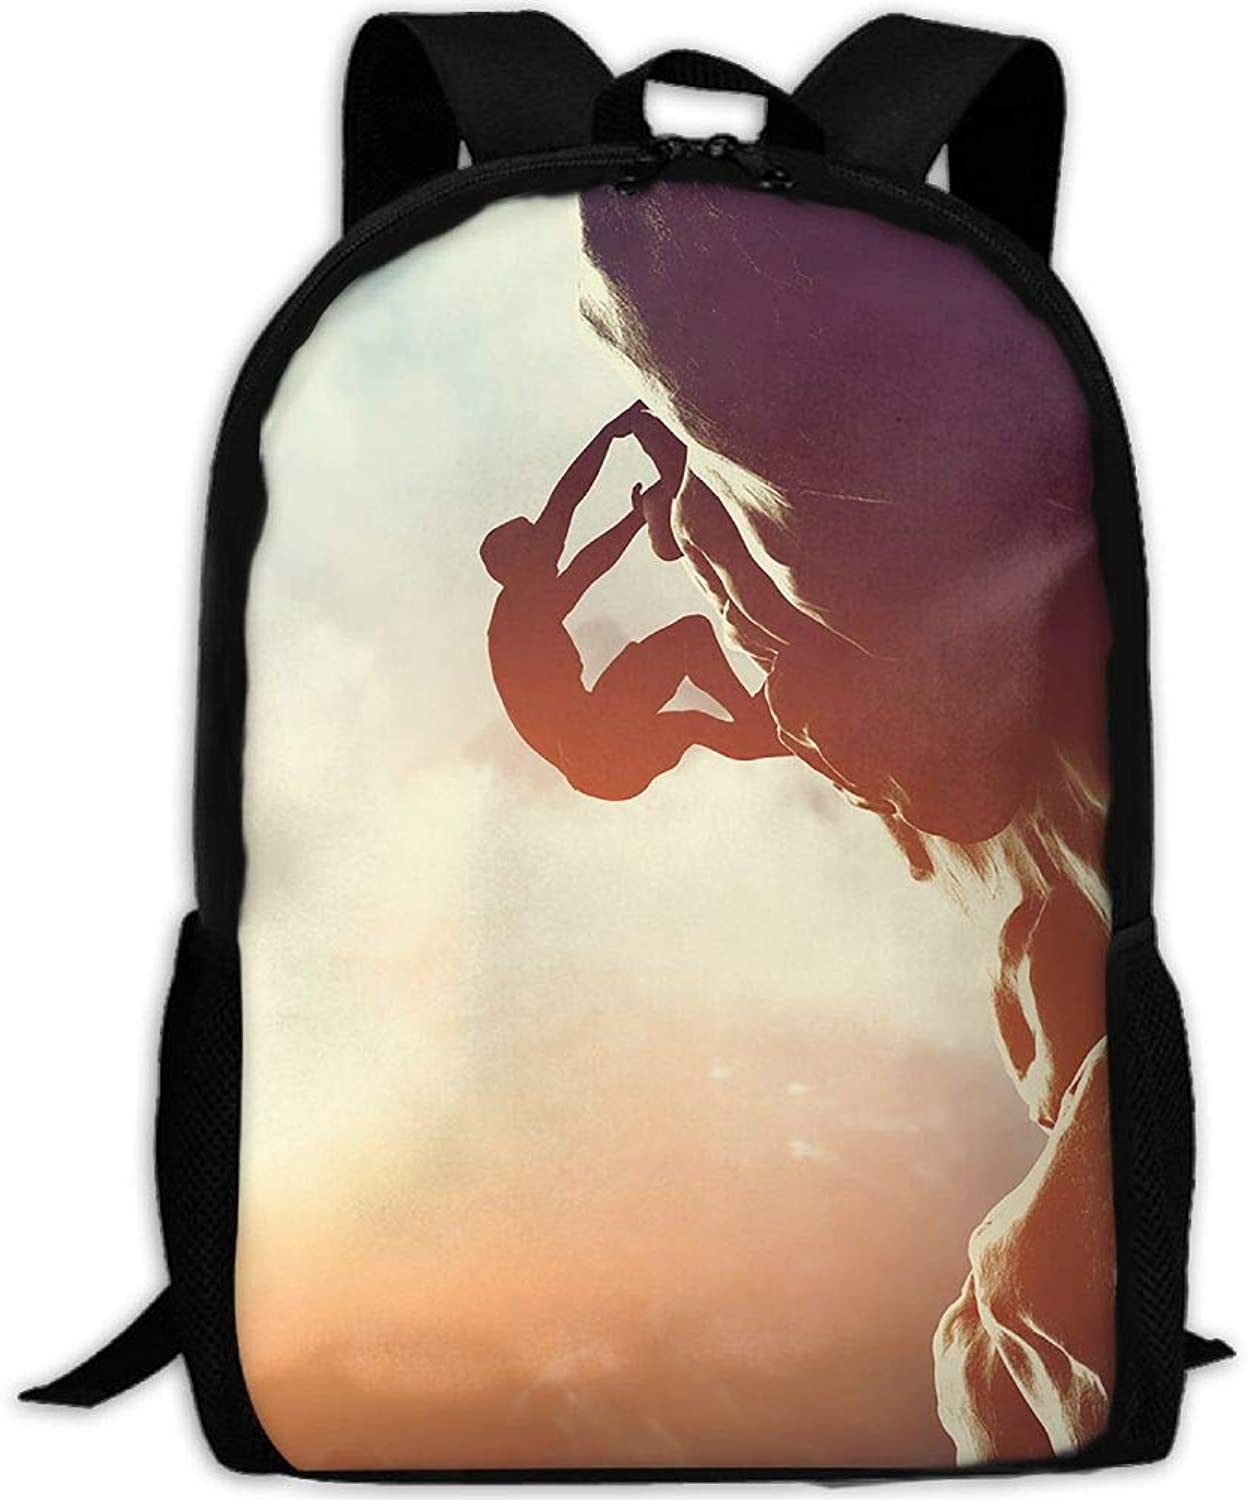 Adult Backpack Rock Mountain Climbing College Daypack Oxford Bag Unisex Business Travel Sports Bag with Adjustable Strap